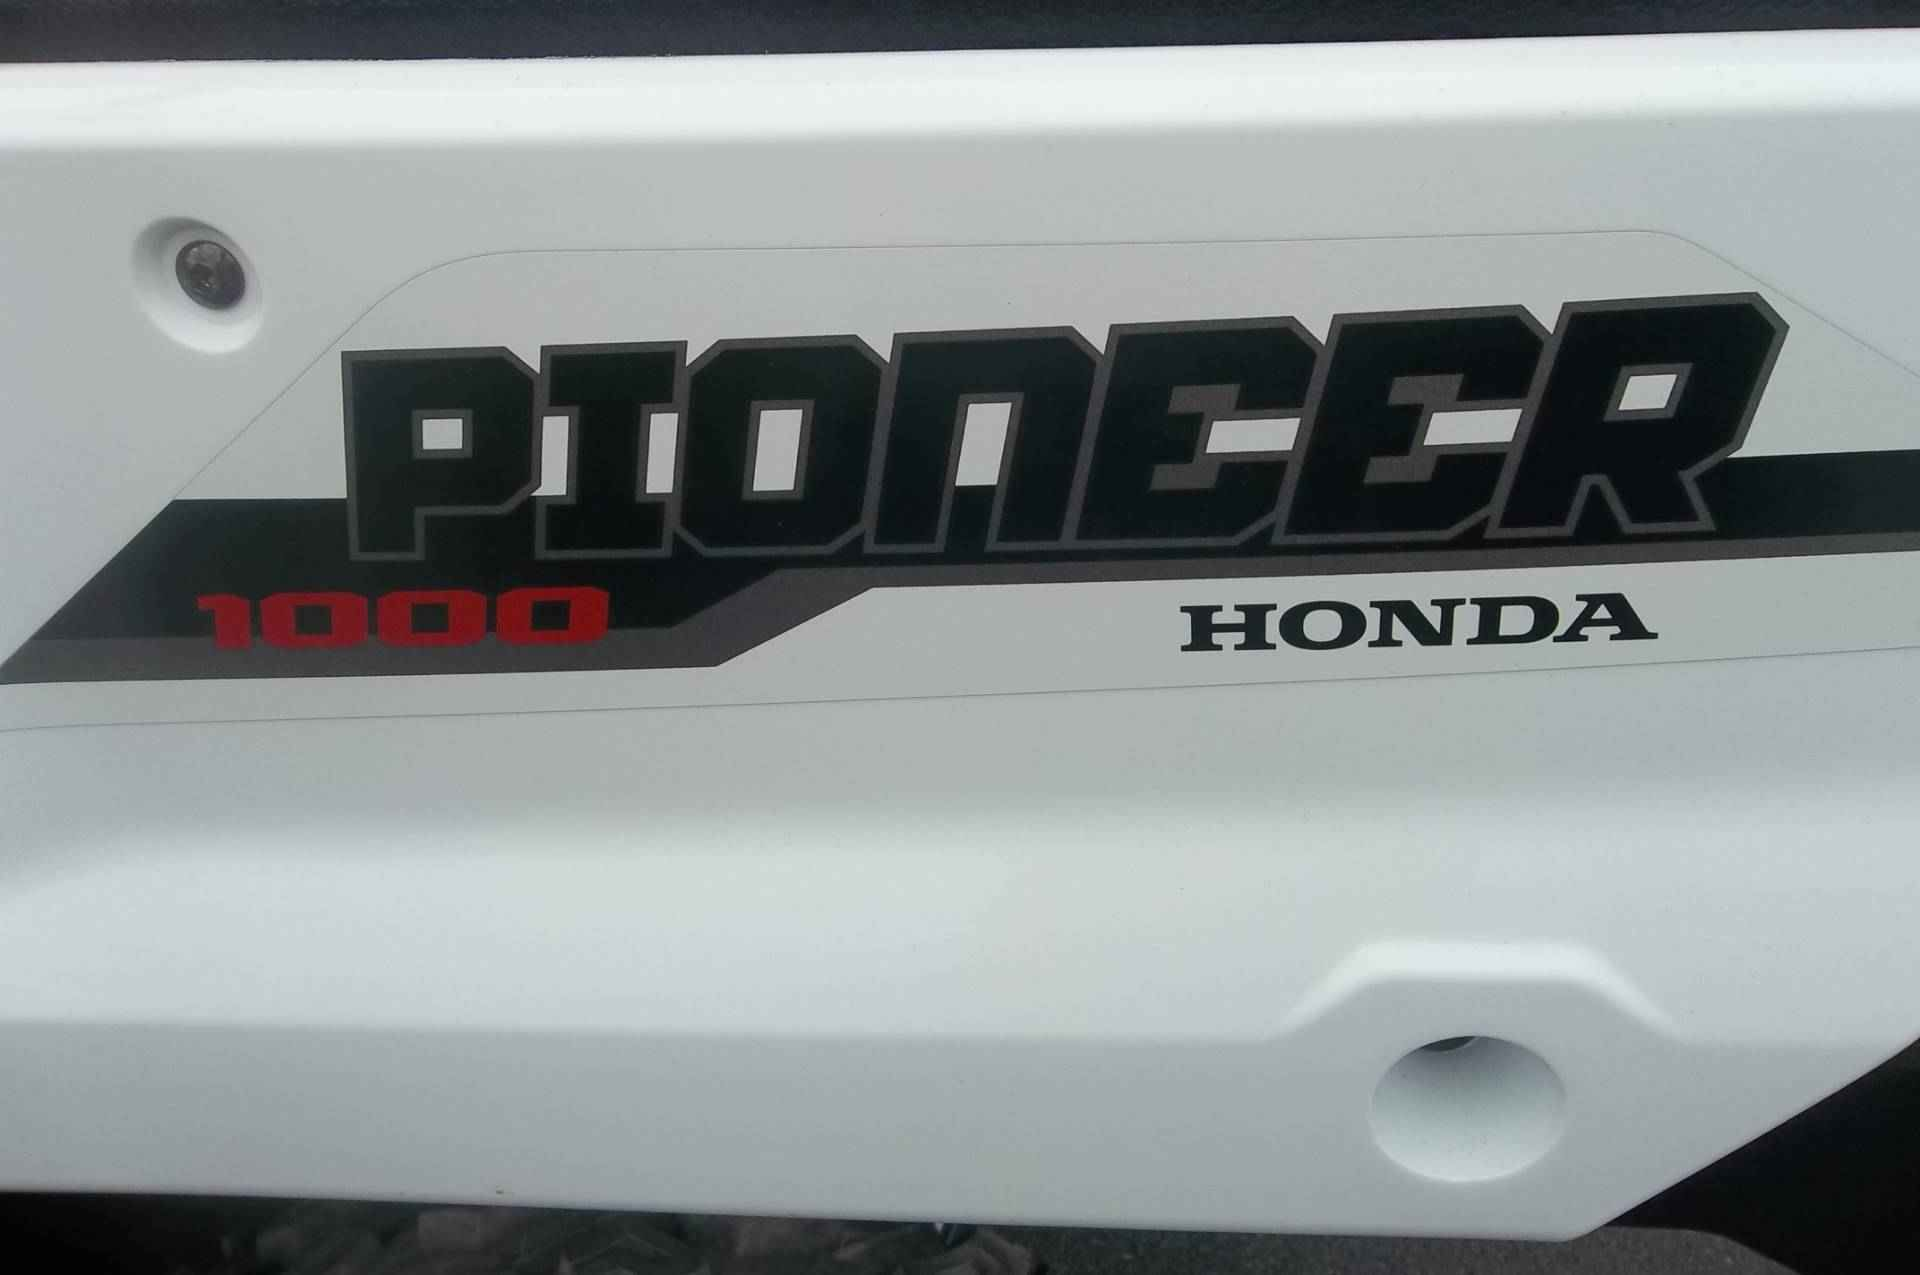 "New 2016 Honda Pioneerâ""¢ 1000 EPS ATVs For Sale in West Virginia. The outdoors is meant to be explored. The highest hills, the deepest canyons, and the farthest reaches of the forests all lie in wait. And now, we bring you an entirely new vehicle that can get you there. The all-new Pioneer 1000 is the world's preeminent side-by-side, both in the Honda lineup, and the industry. Built around a class-leading 999 cc twin-cylinder engine, it can haul up to 1,000 pounds and can tow a full ton…"